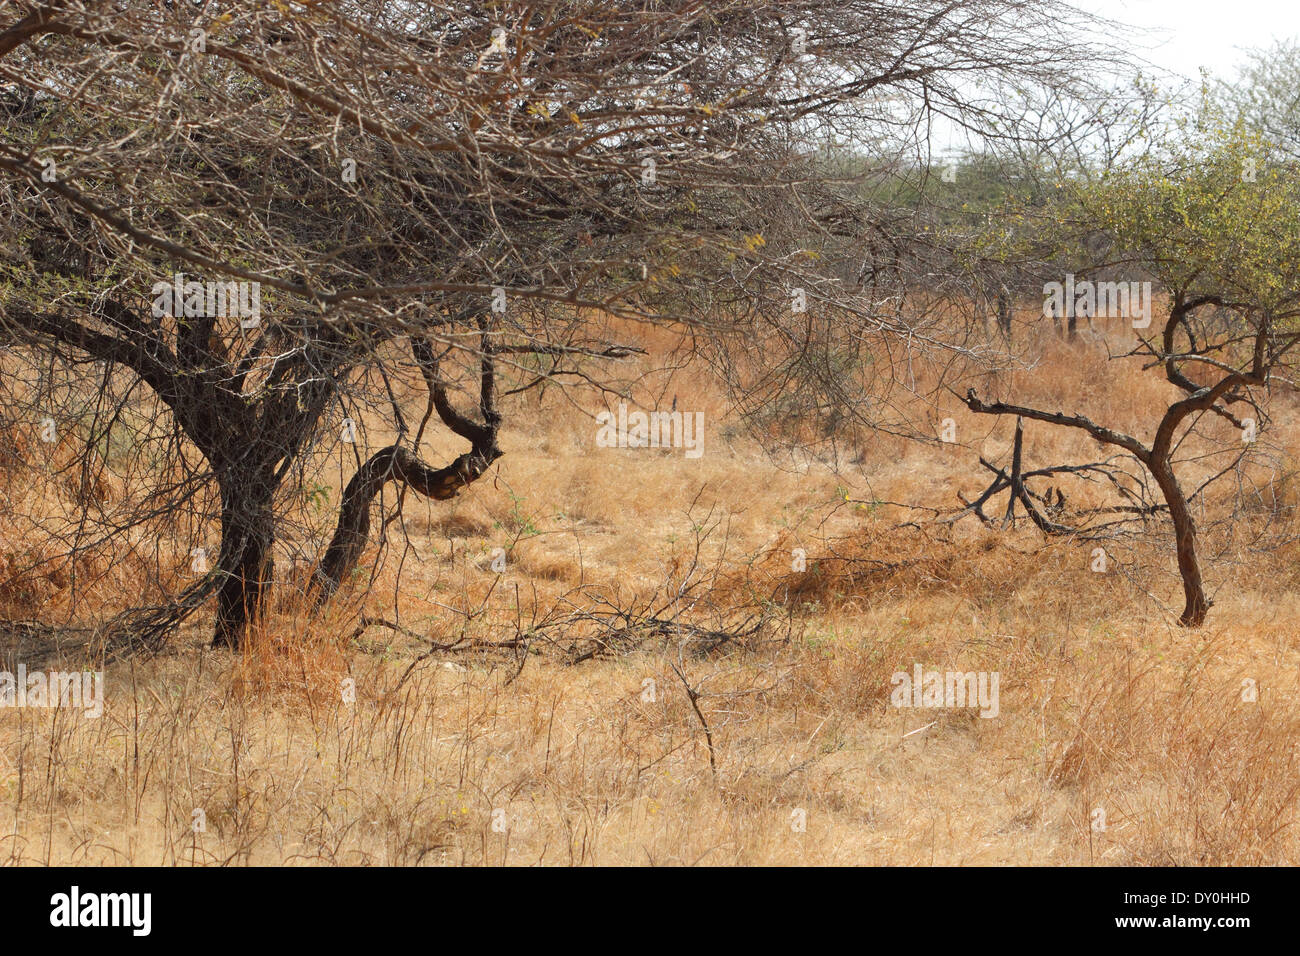 Gir forest in India - Stock Image